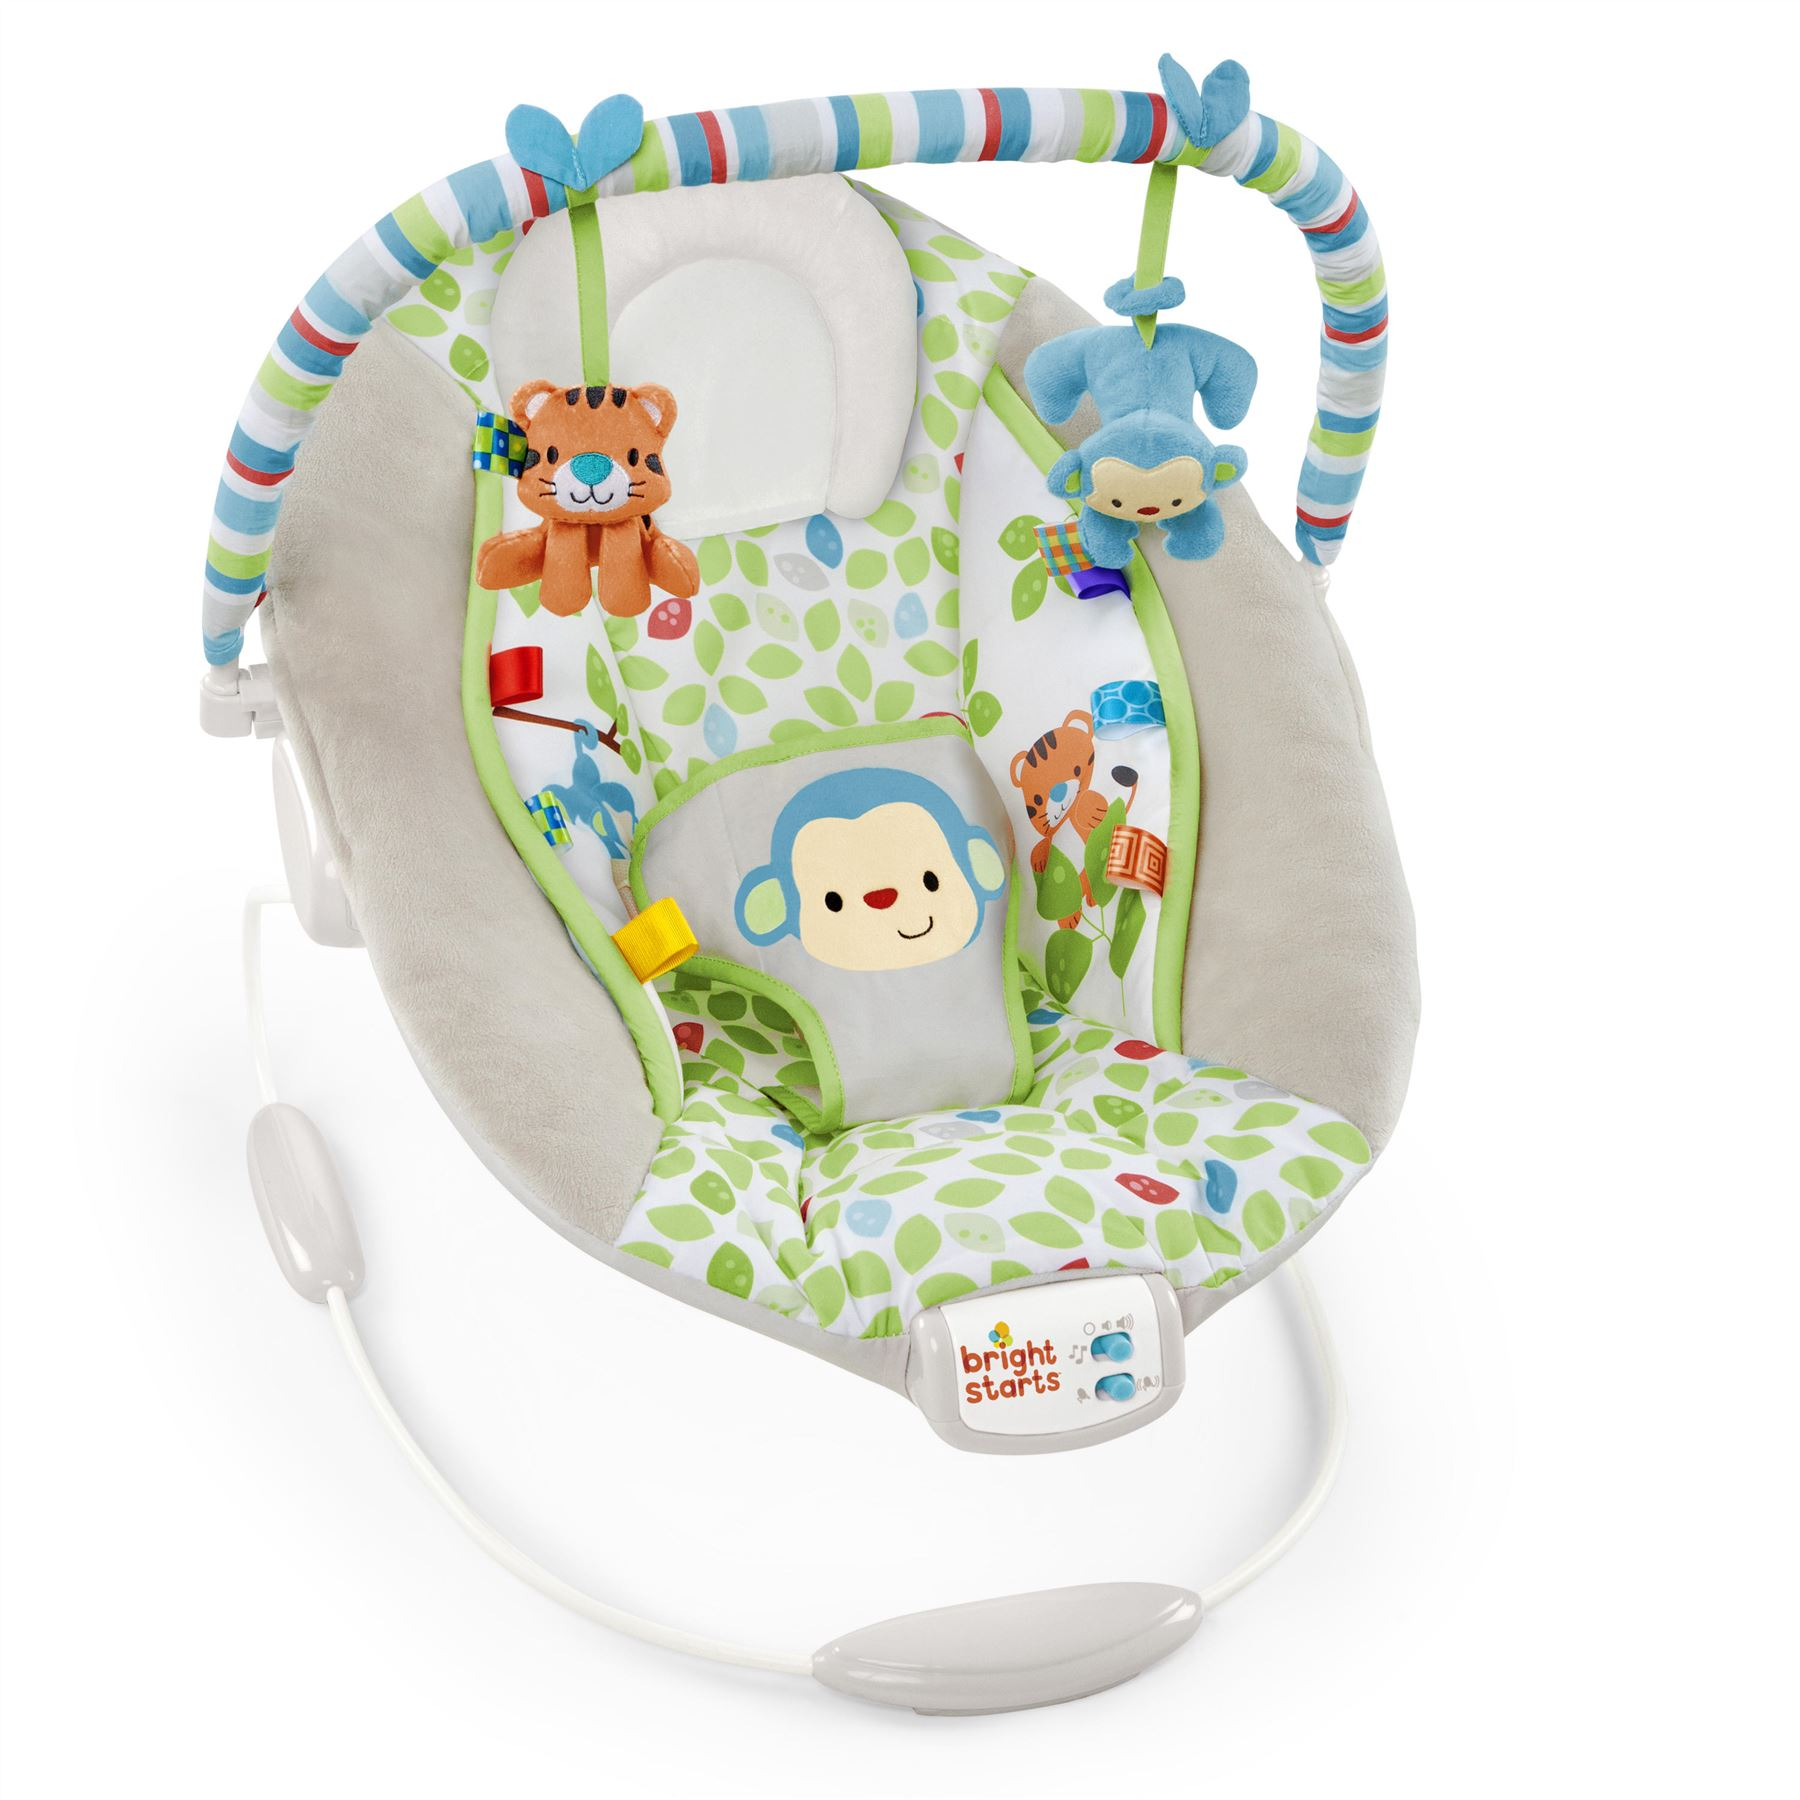 Bouncer Baby Details About Comfort Harmony Monkey Bouncer Baby Toddler Taggies Melody Rocker